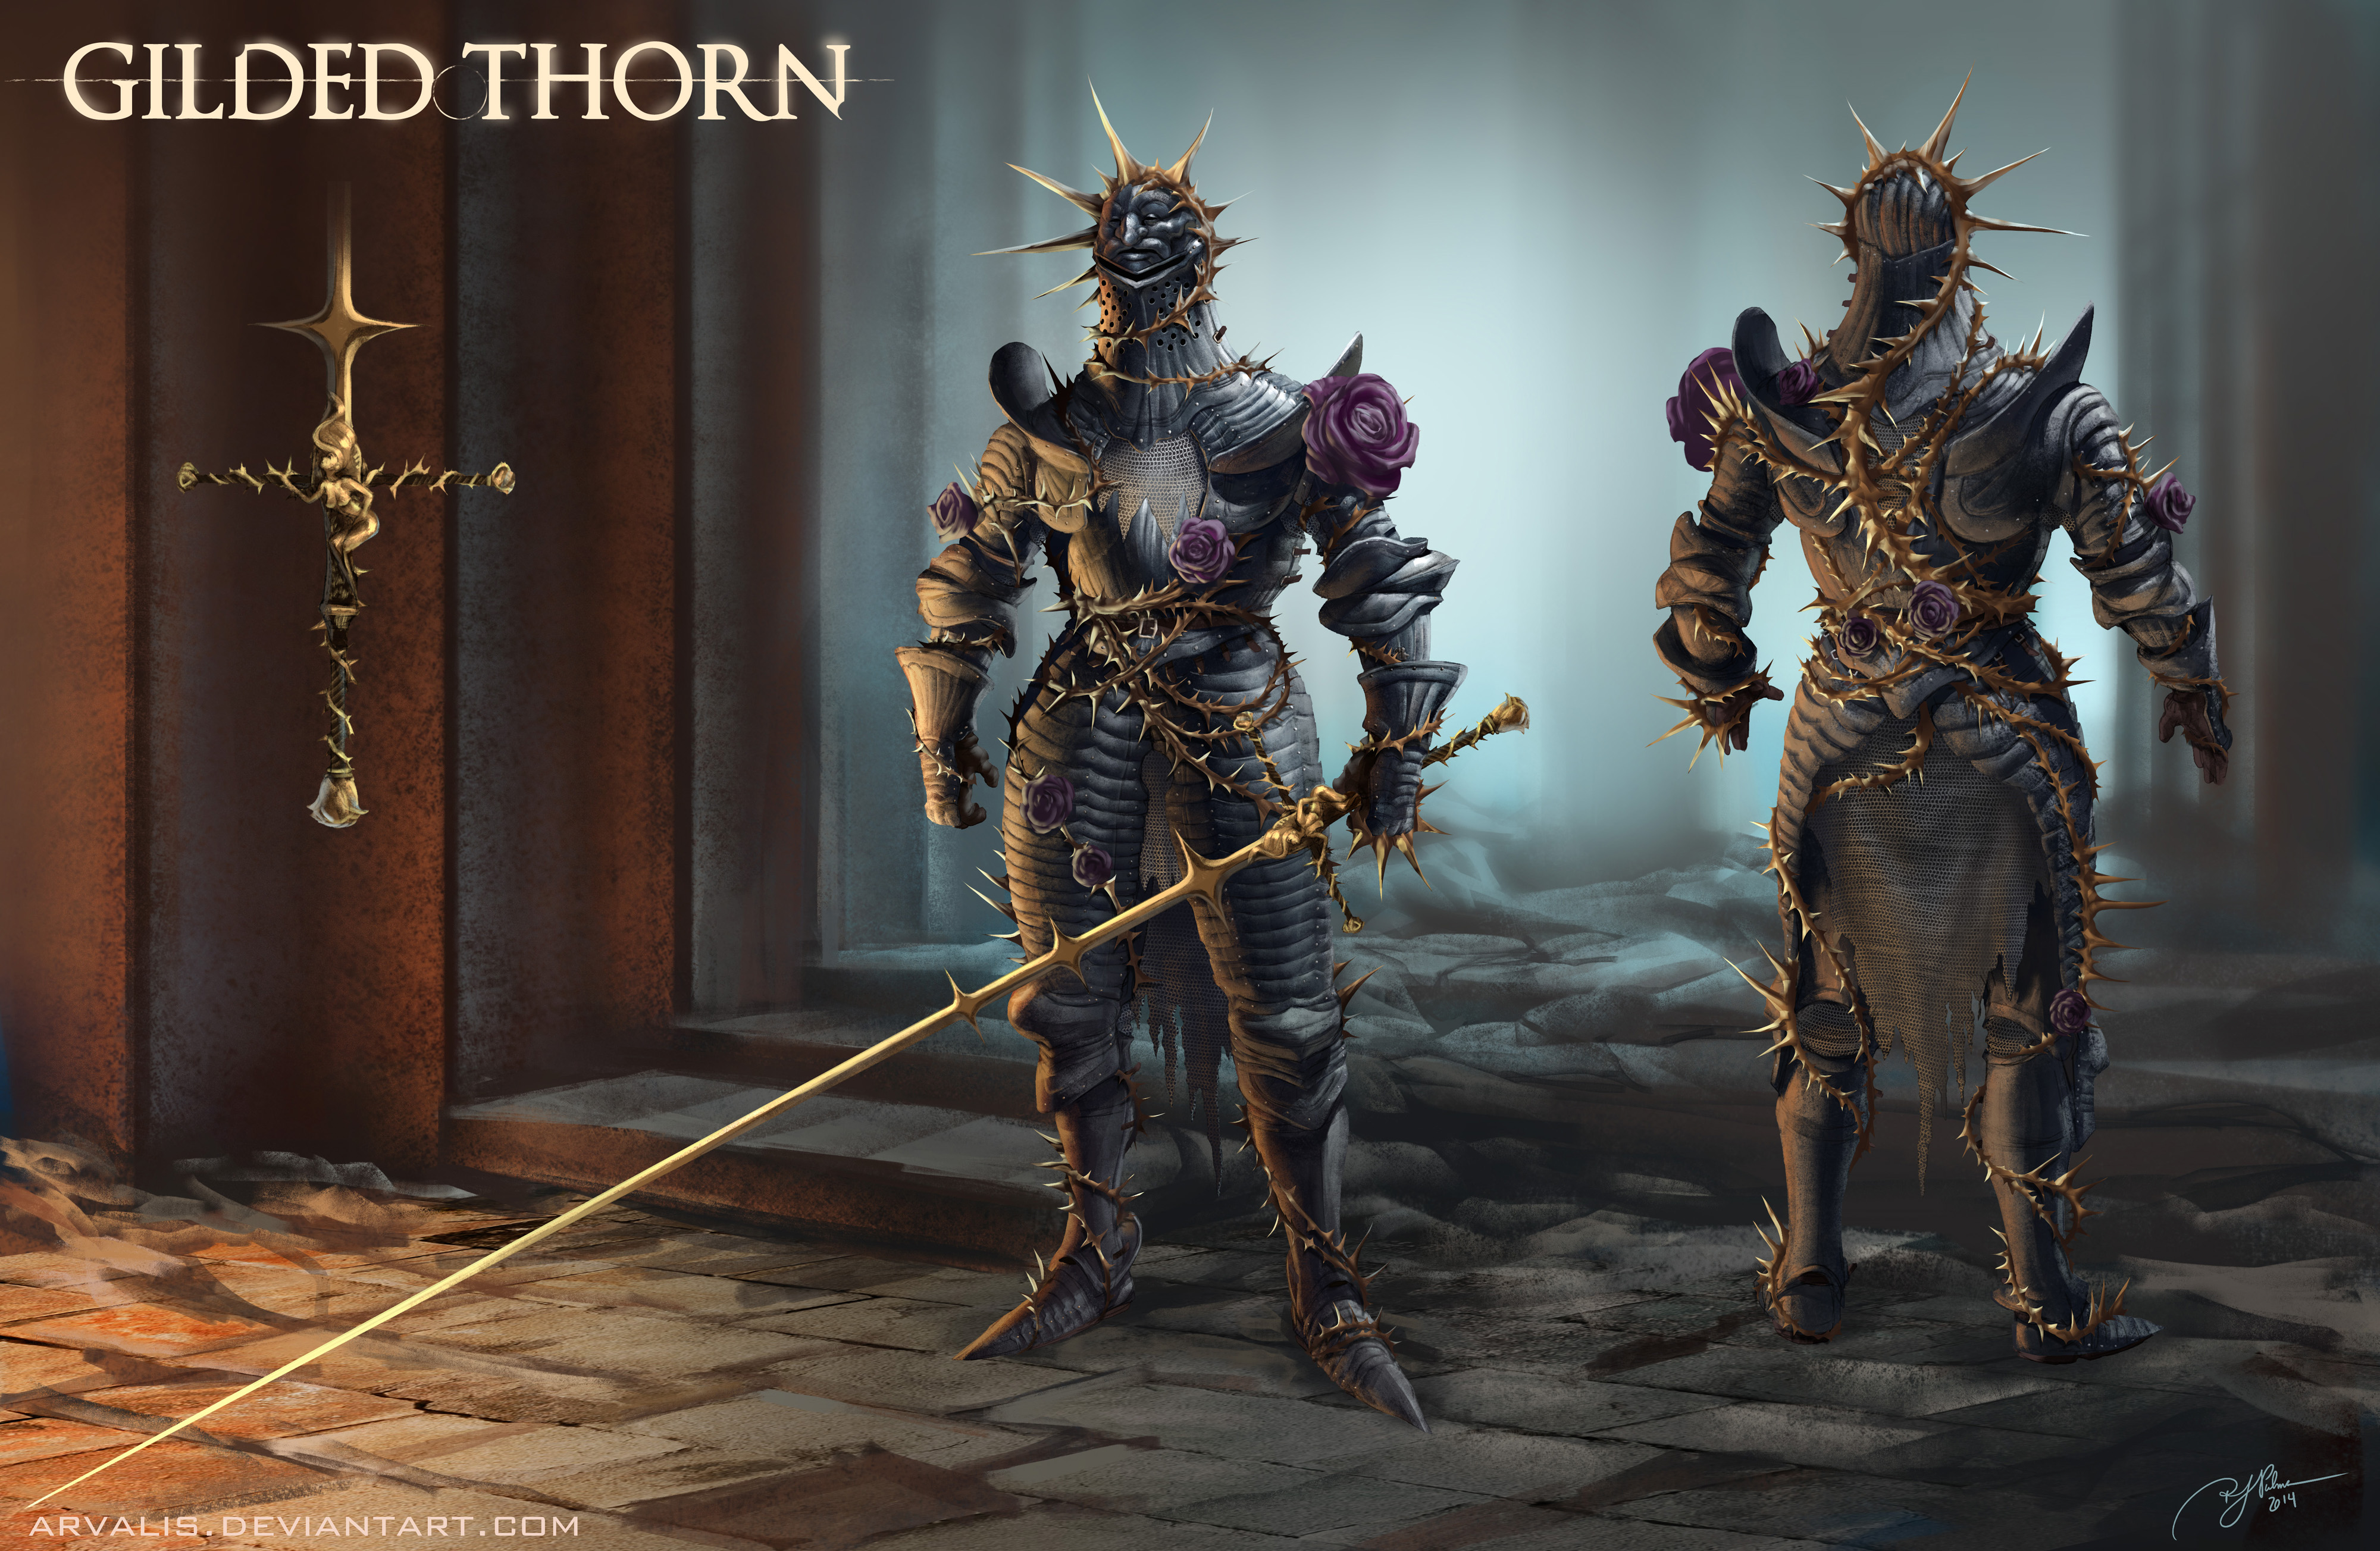 Gilded Thorn Armor By Arvalis On Deviantart Eerily shaped helmet/armor/gauntlets/leggings spoken of in legend, crafted with the scales of the black dragon. gilded thorn armor by arvalis on deviantart